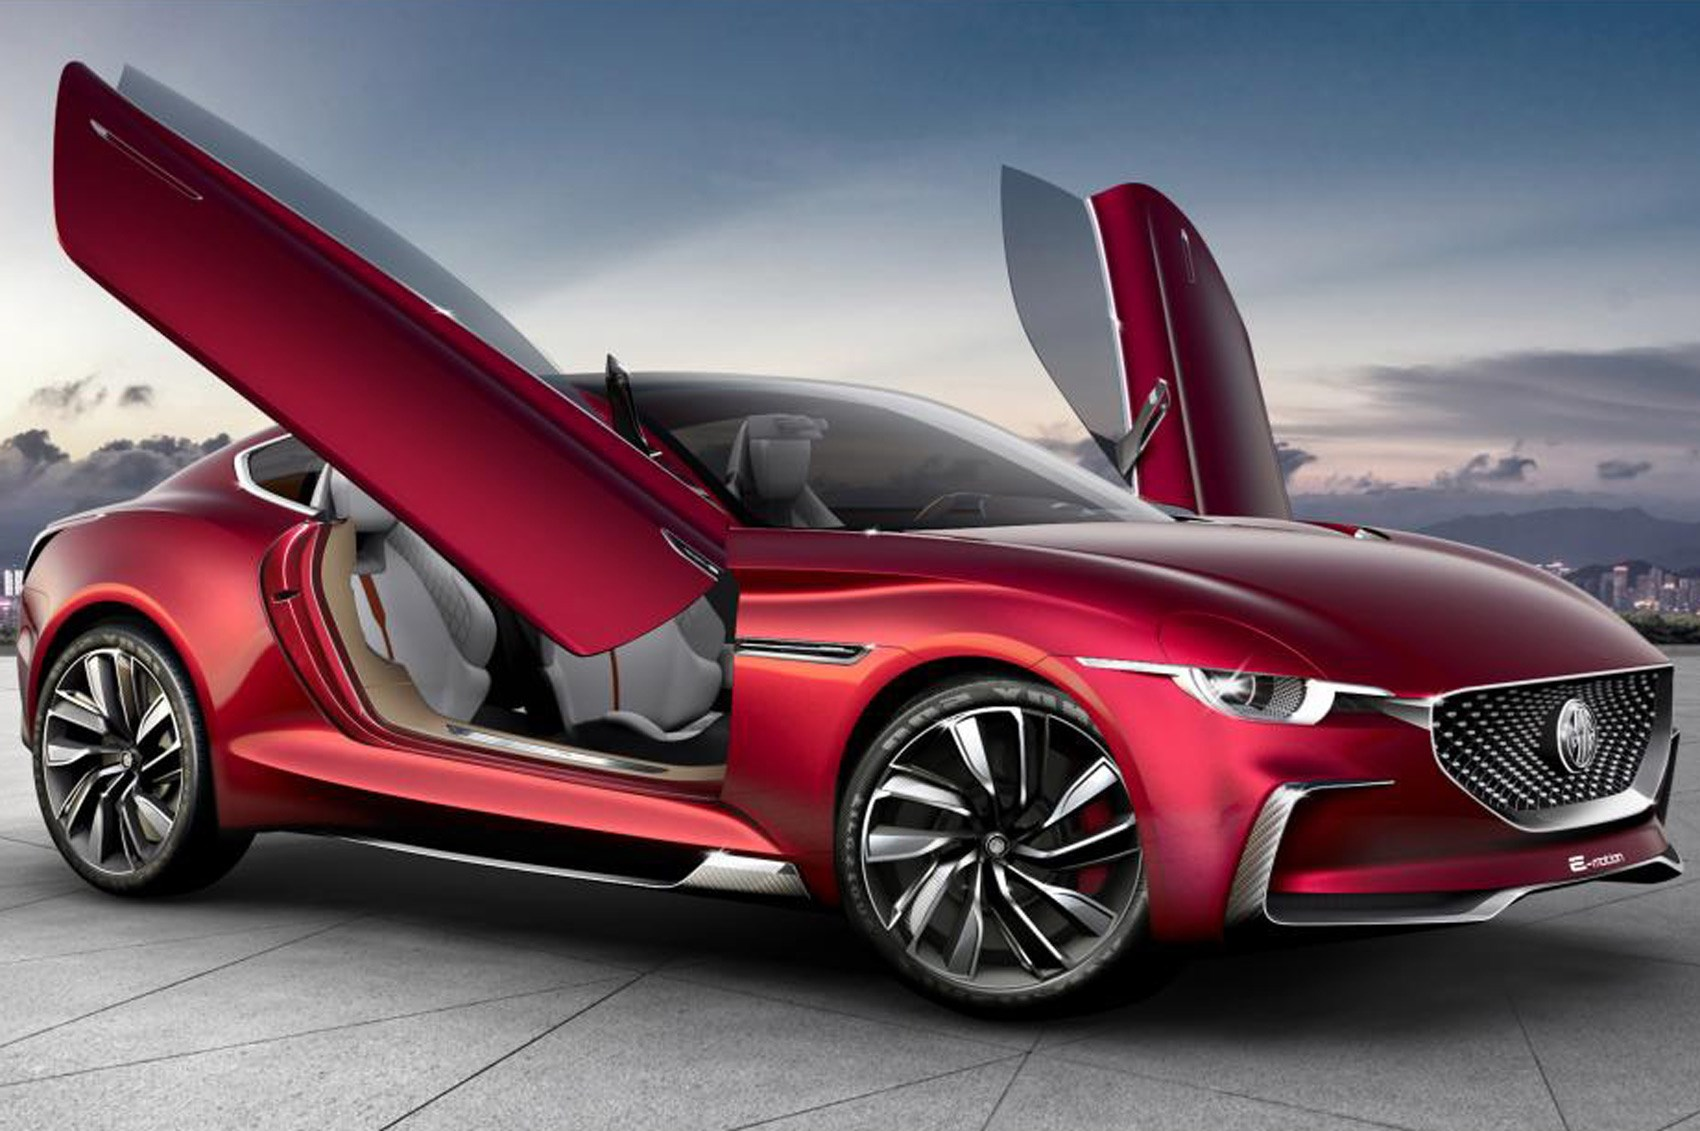 All-electric MG E-motion concept is supercar for millennials by CAR Magazine